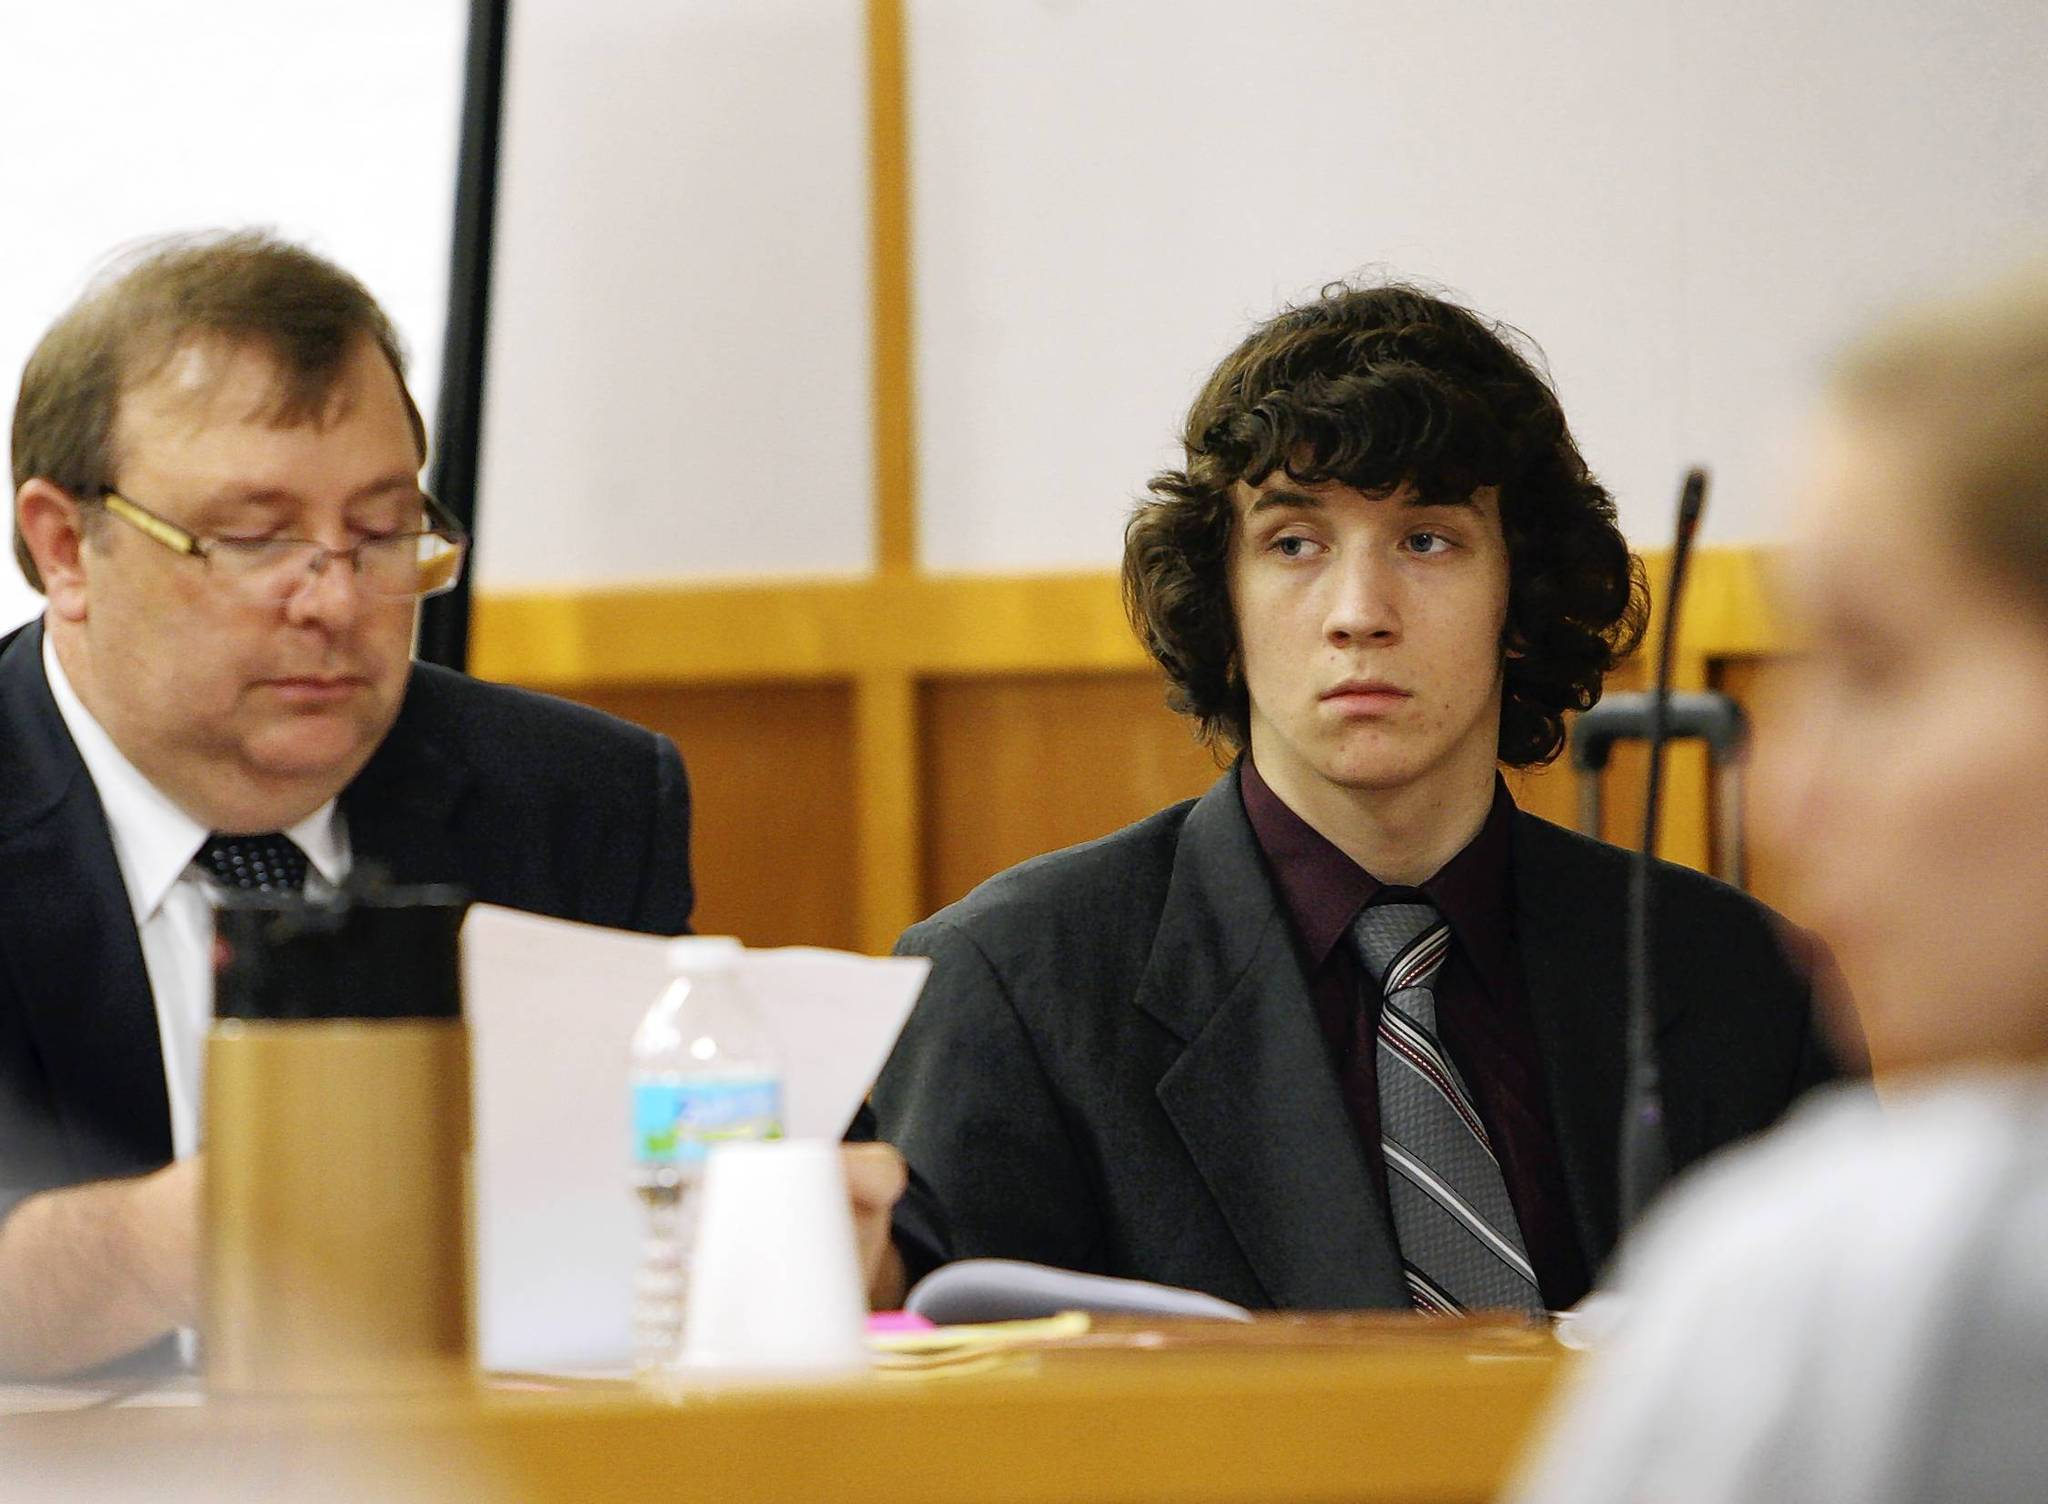 Ryan Ray, sitting next to his attorney James Hope, left, listens to attorneys as the question prospective jurors on Monday, during jury selectionRay is on trial for  first-degree murder. (Tom Benitez/Orlando Sentinel)